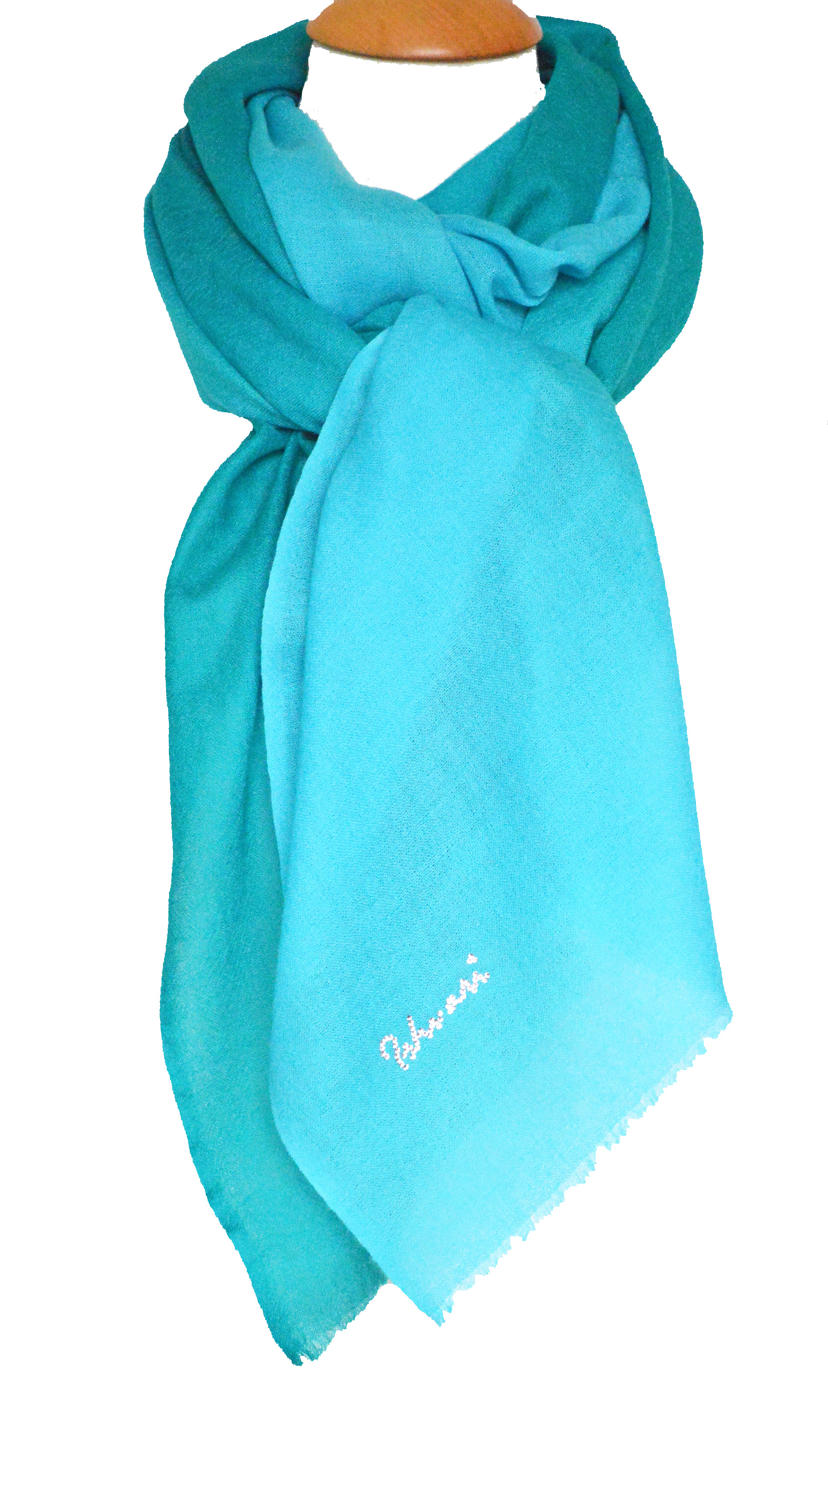 Turquoise/Teal Ombre Wool/Silk Scarf